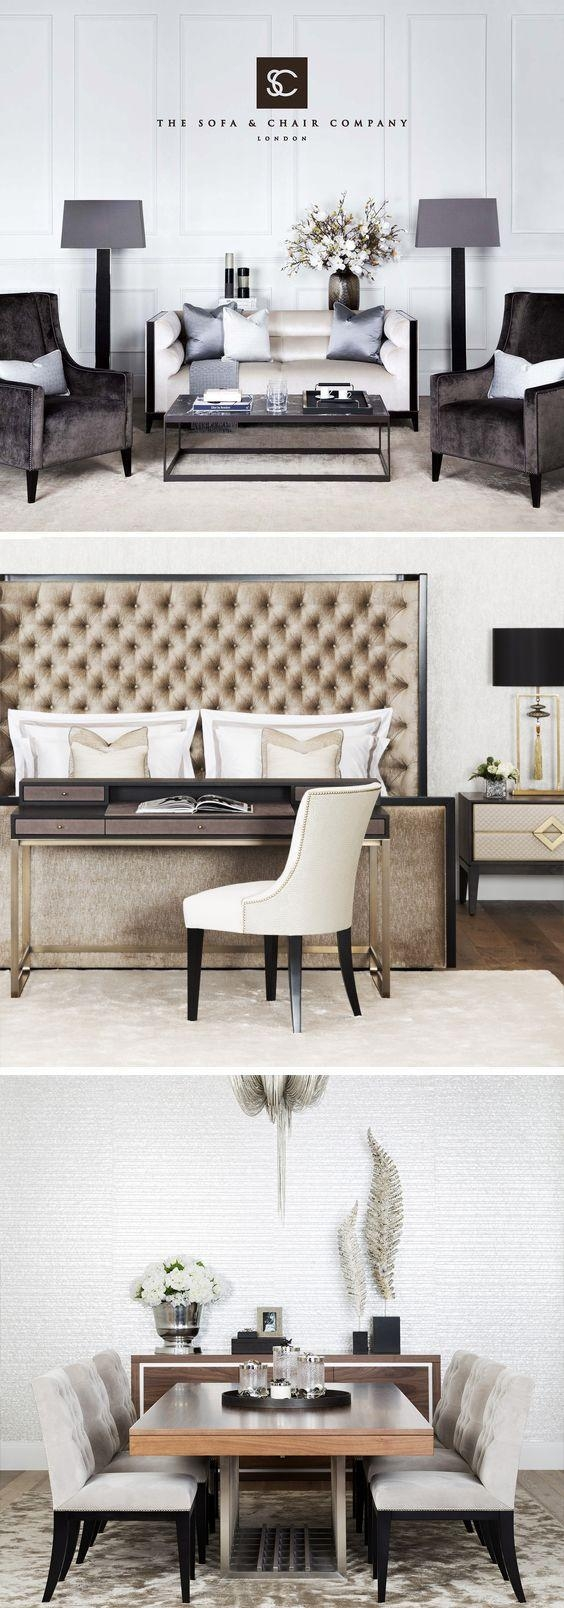 Best 25+ Sofa Chair Ideas On Pinterest | Love Seats, Grey Tufted For Bedroom Sofas And Chairs (Image 12 of 20)